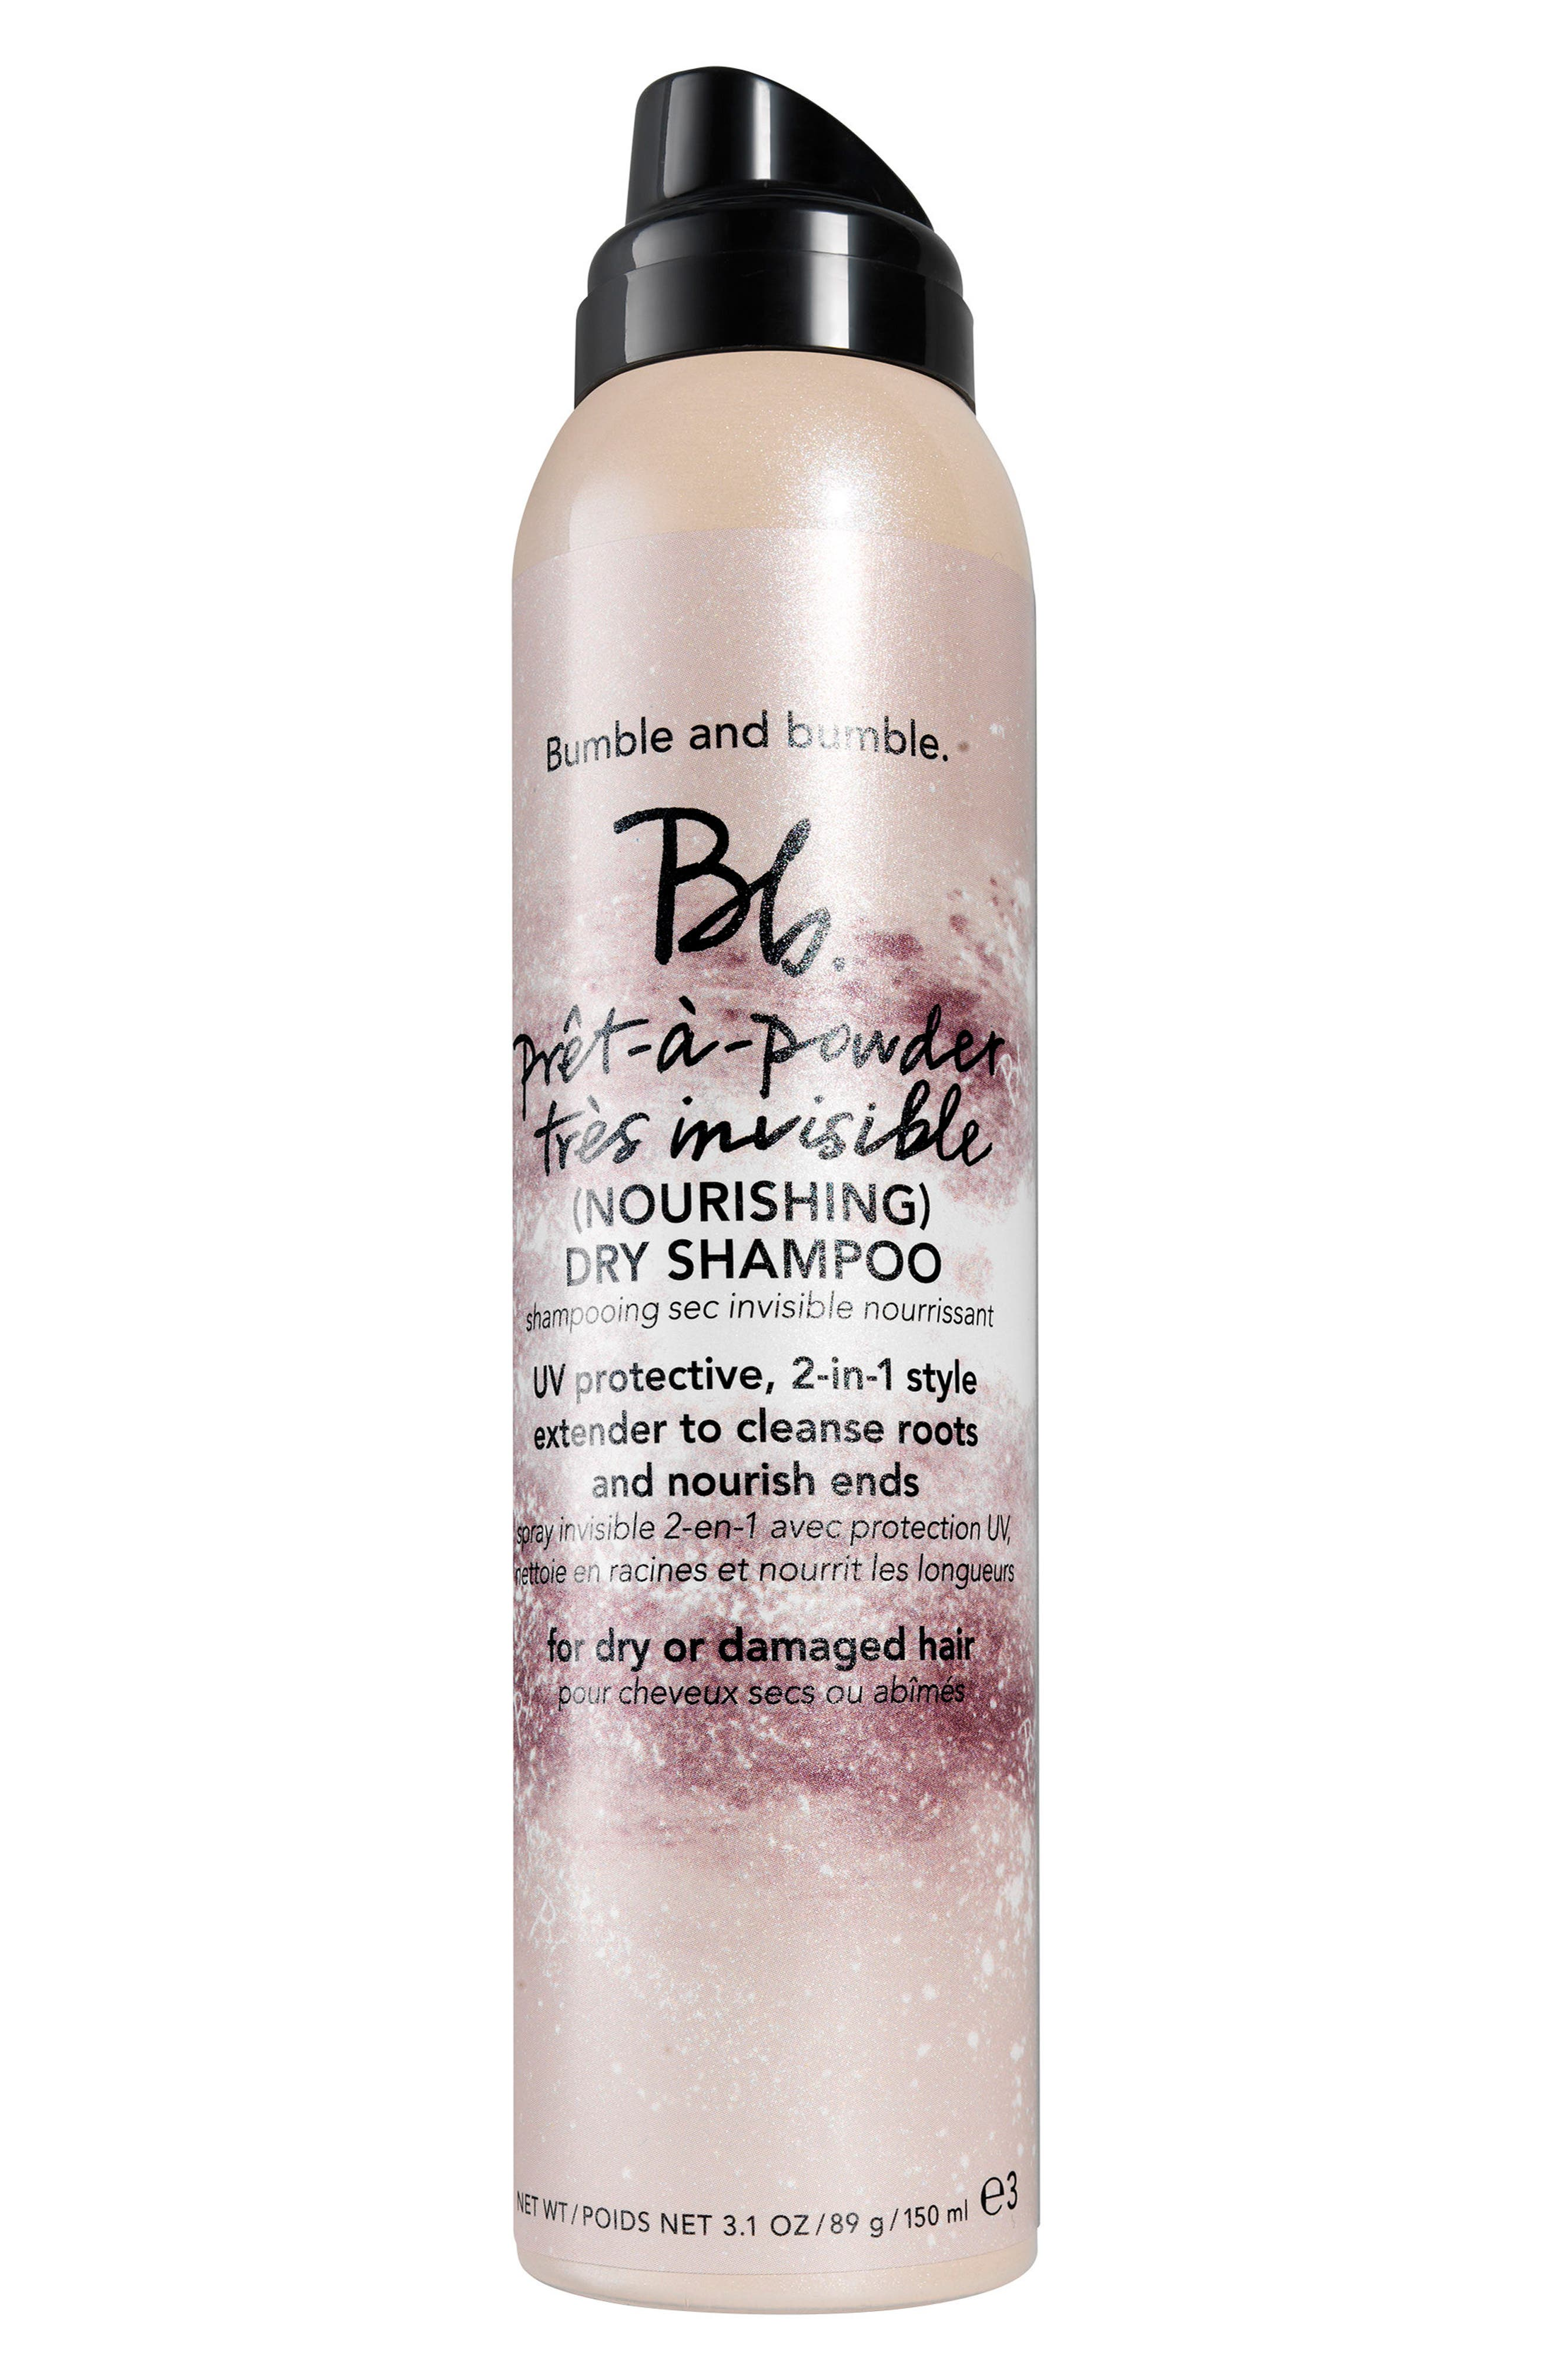 Bumble and bumble Prêt-a-Powder Très Invisible Nourishing Dry Shampoo